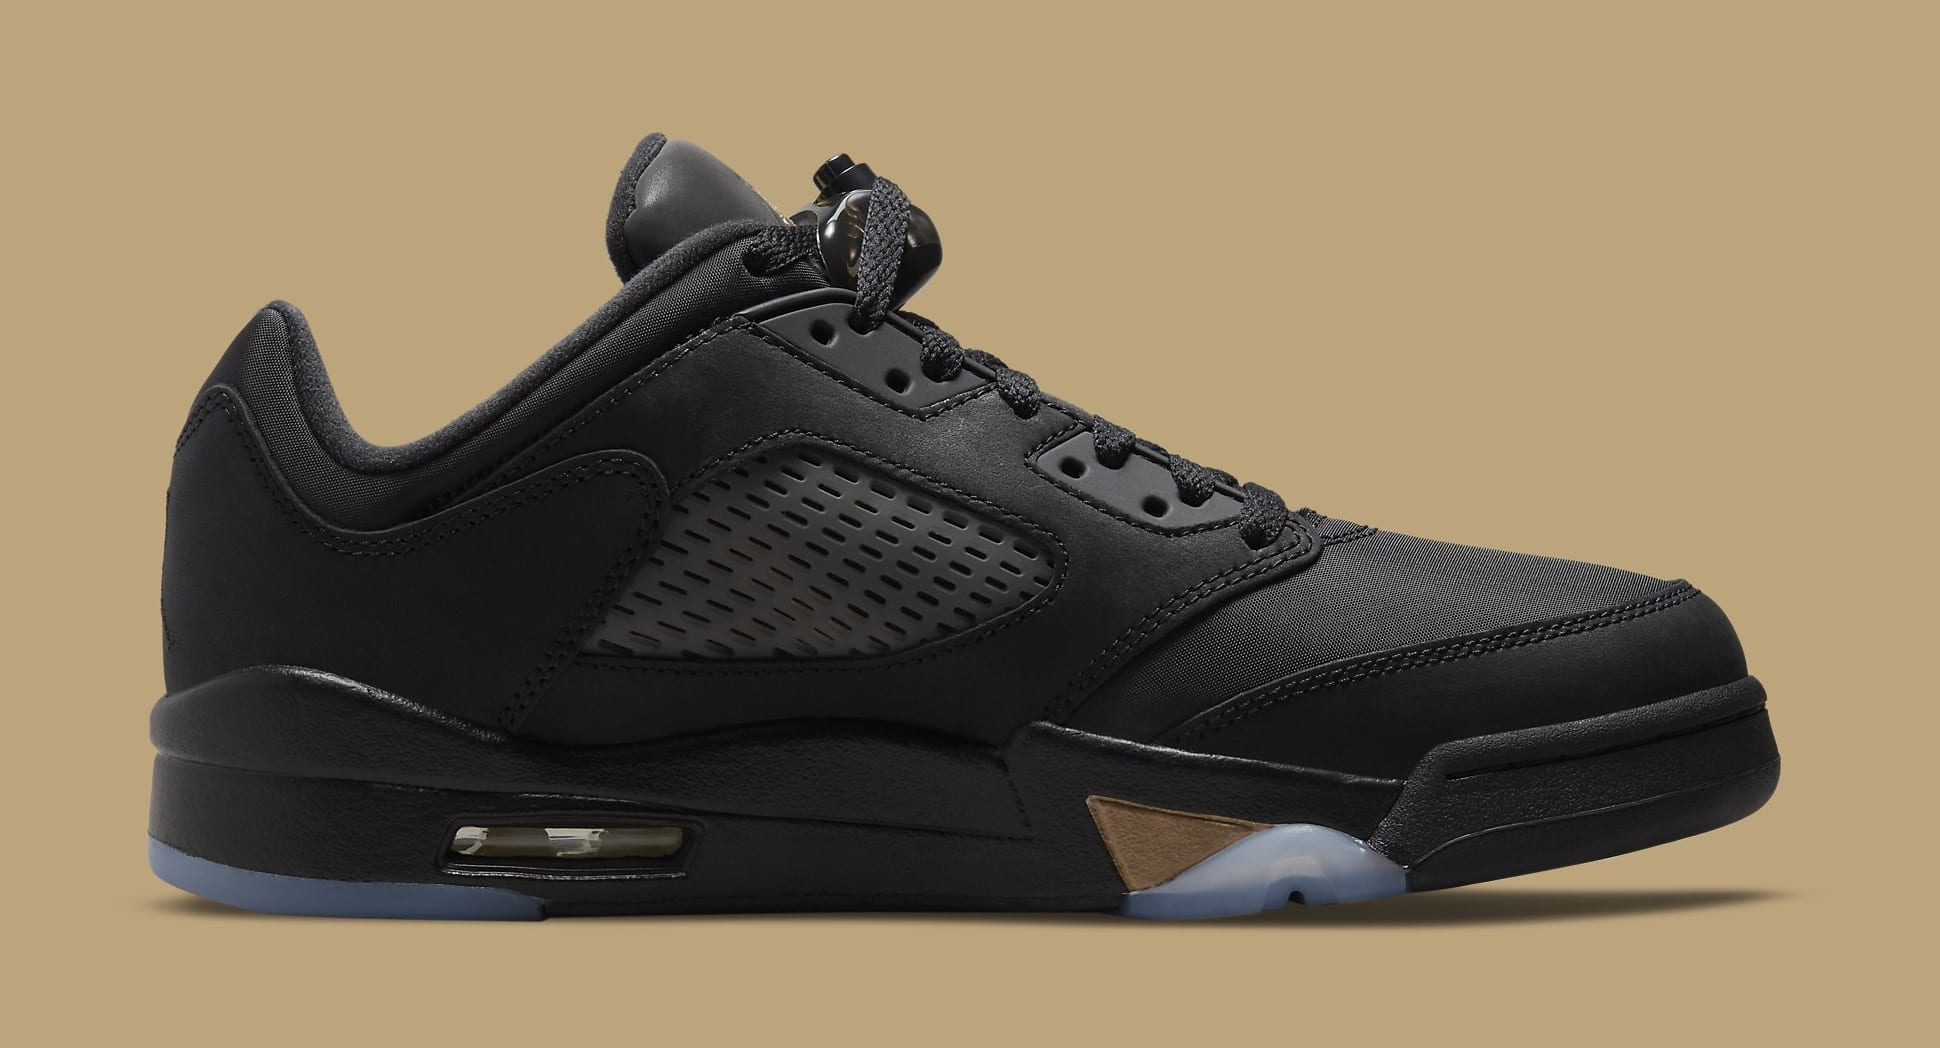 Air Jordan 5 Retro Low Wings 'Class of 2020-21' DJ1094-001 Medial